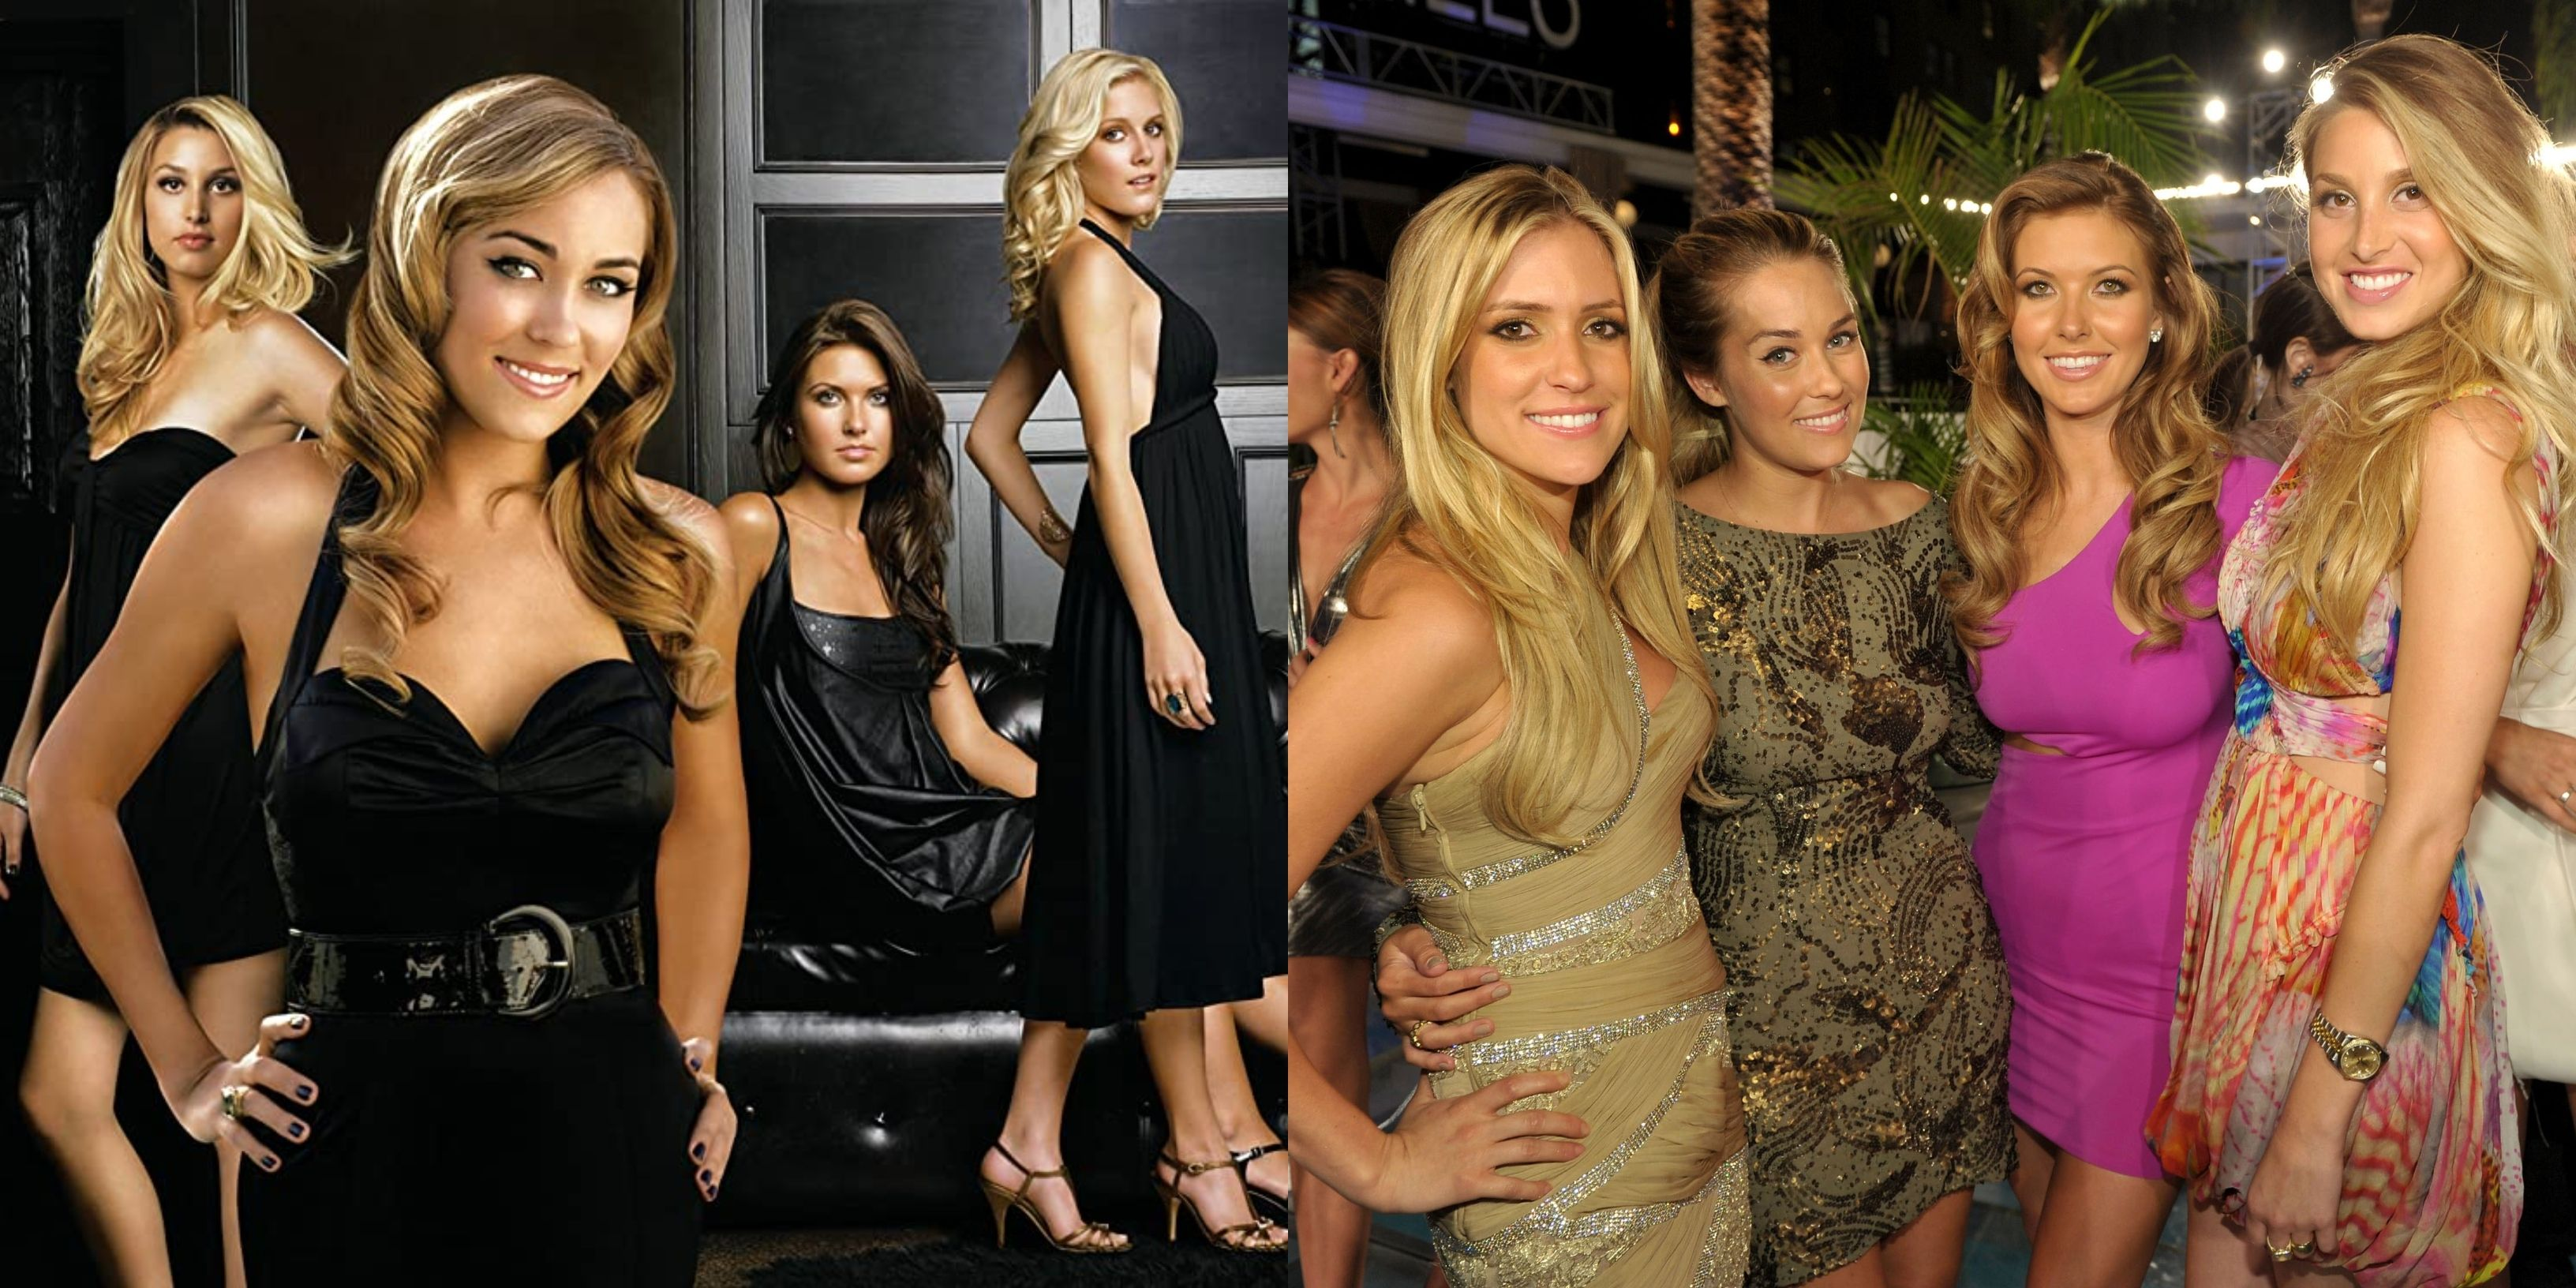 The Cast Of The Hills: Then & Now | TheThings